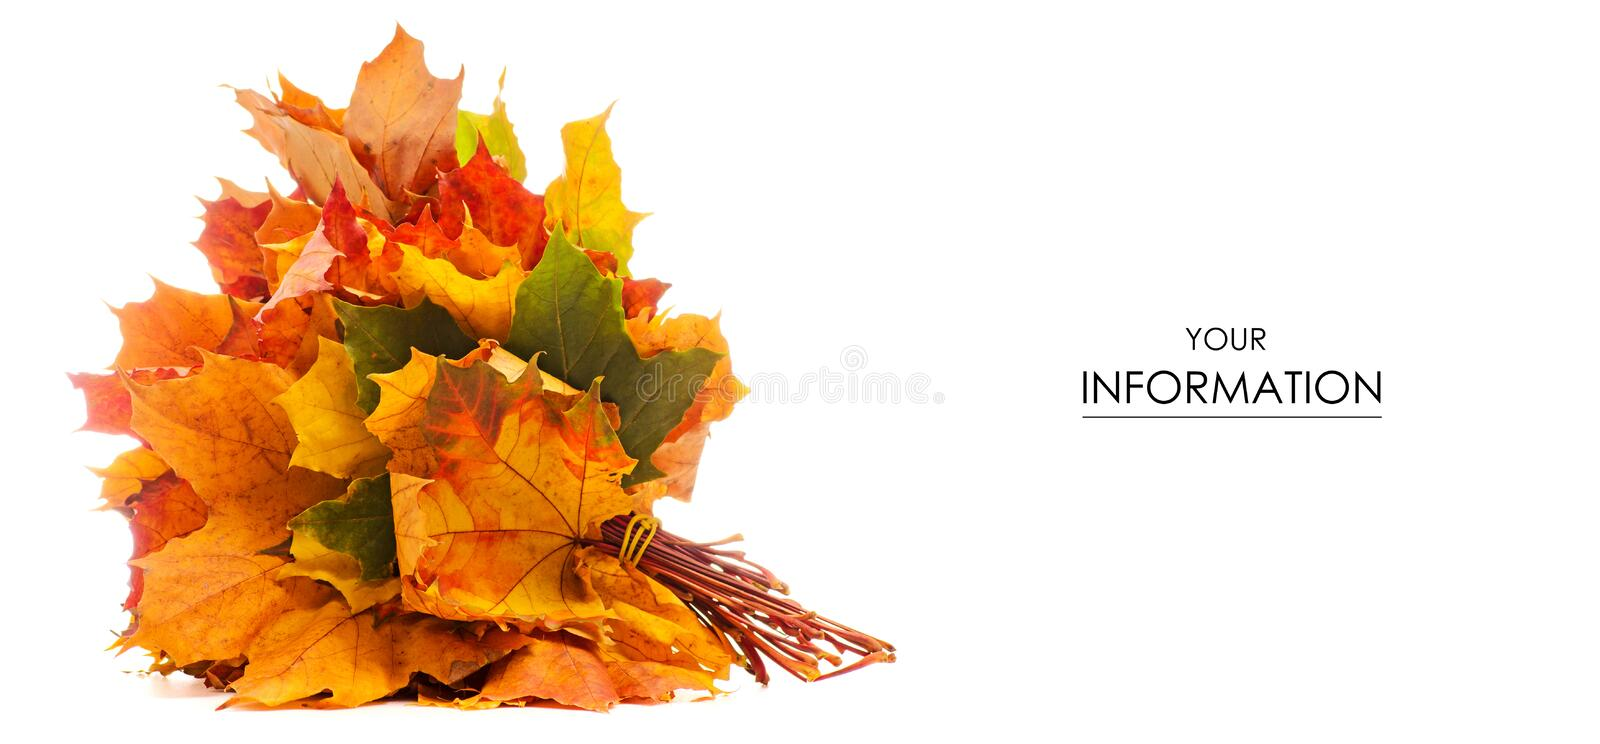 The autumn leaves pattern royalty free stock photography